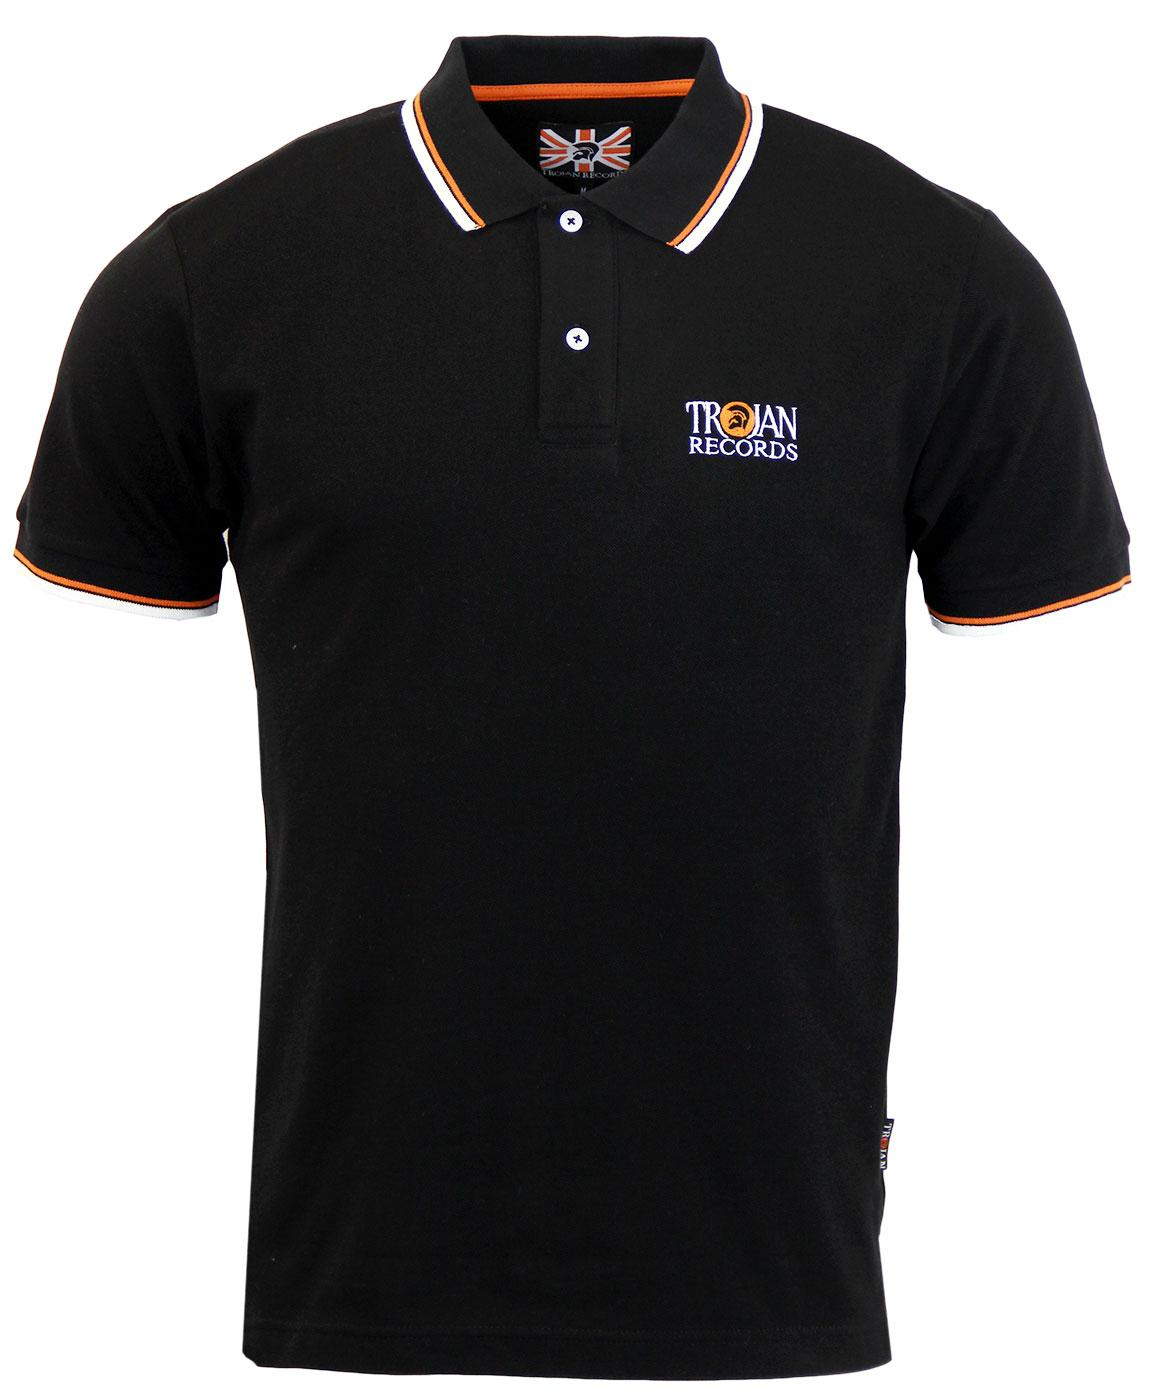 TROJAN RECORDS Mod Ska Signature Tipped Polo Top